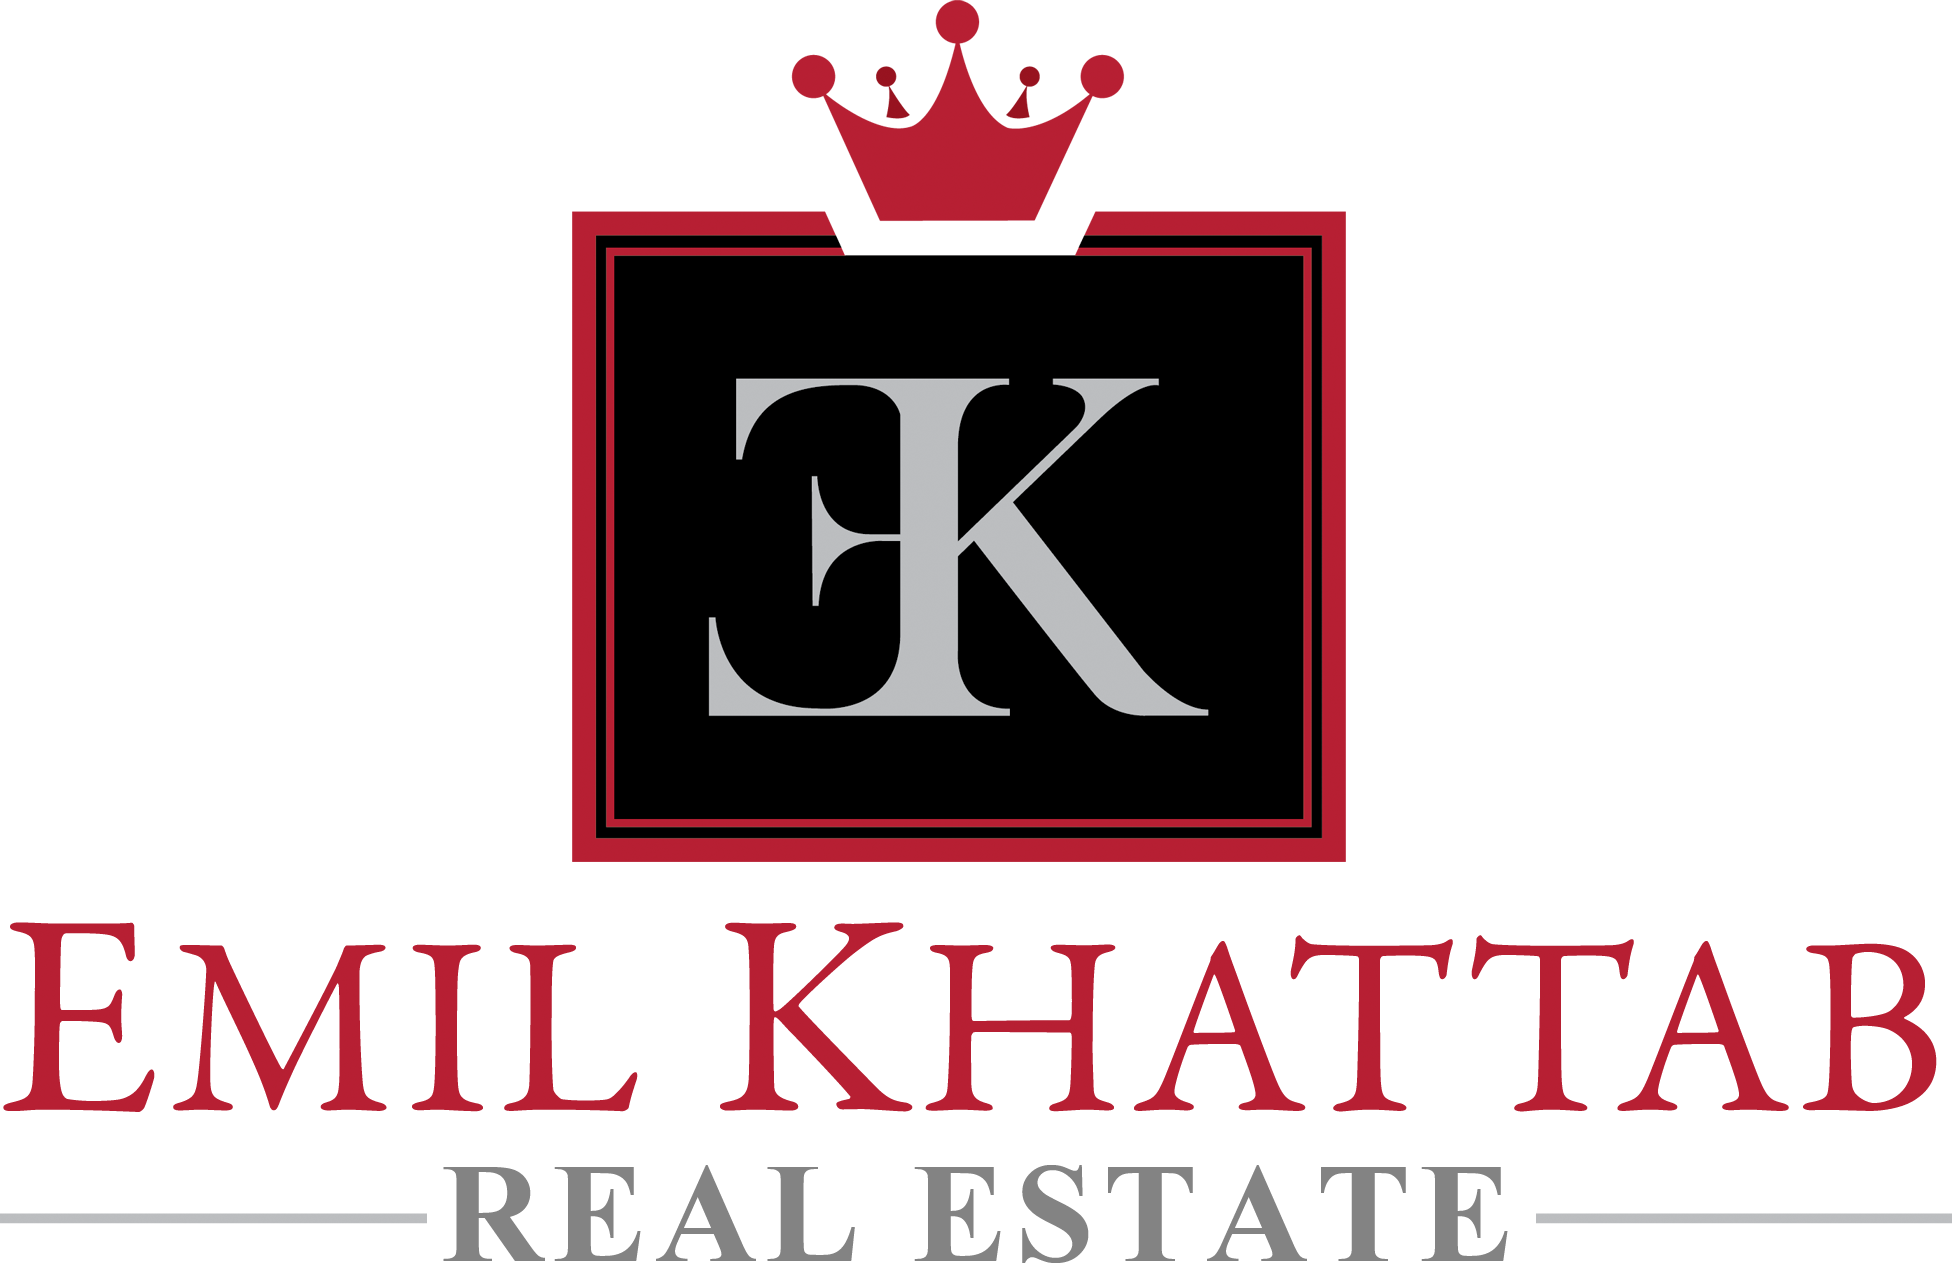 Emil Khattab - Exceeding Expectations - One Property at a time